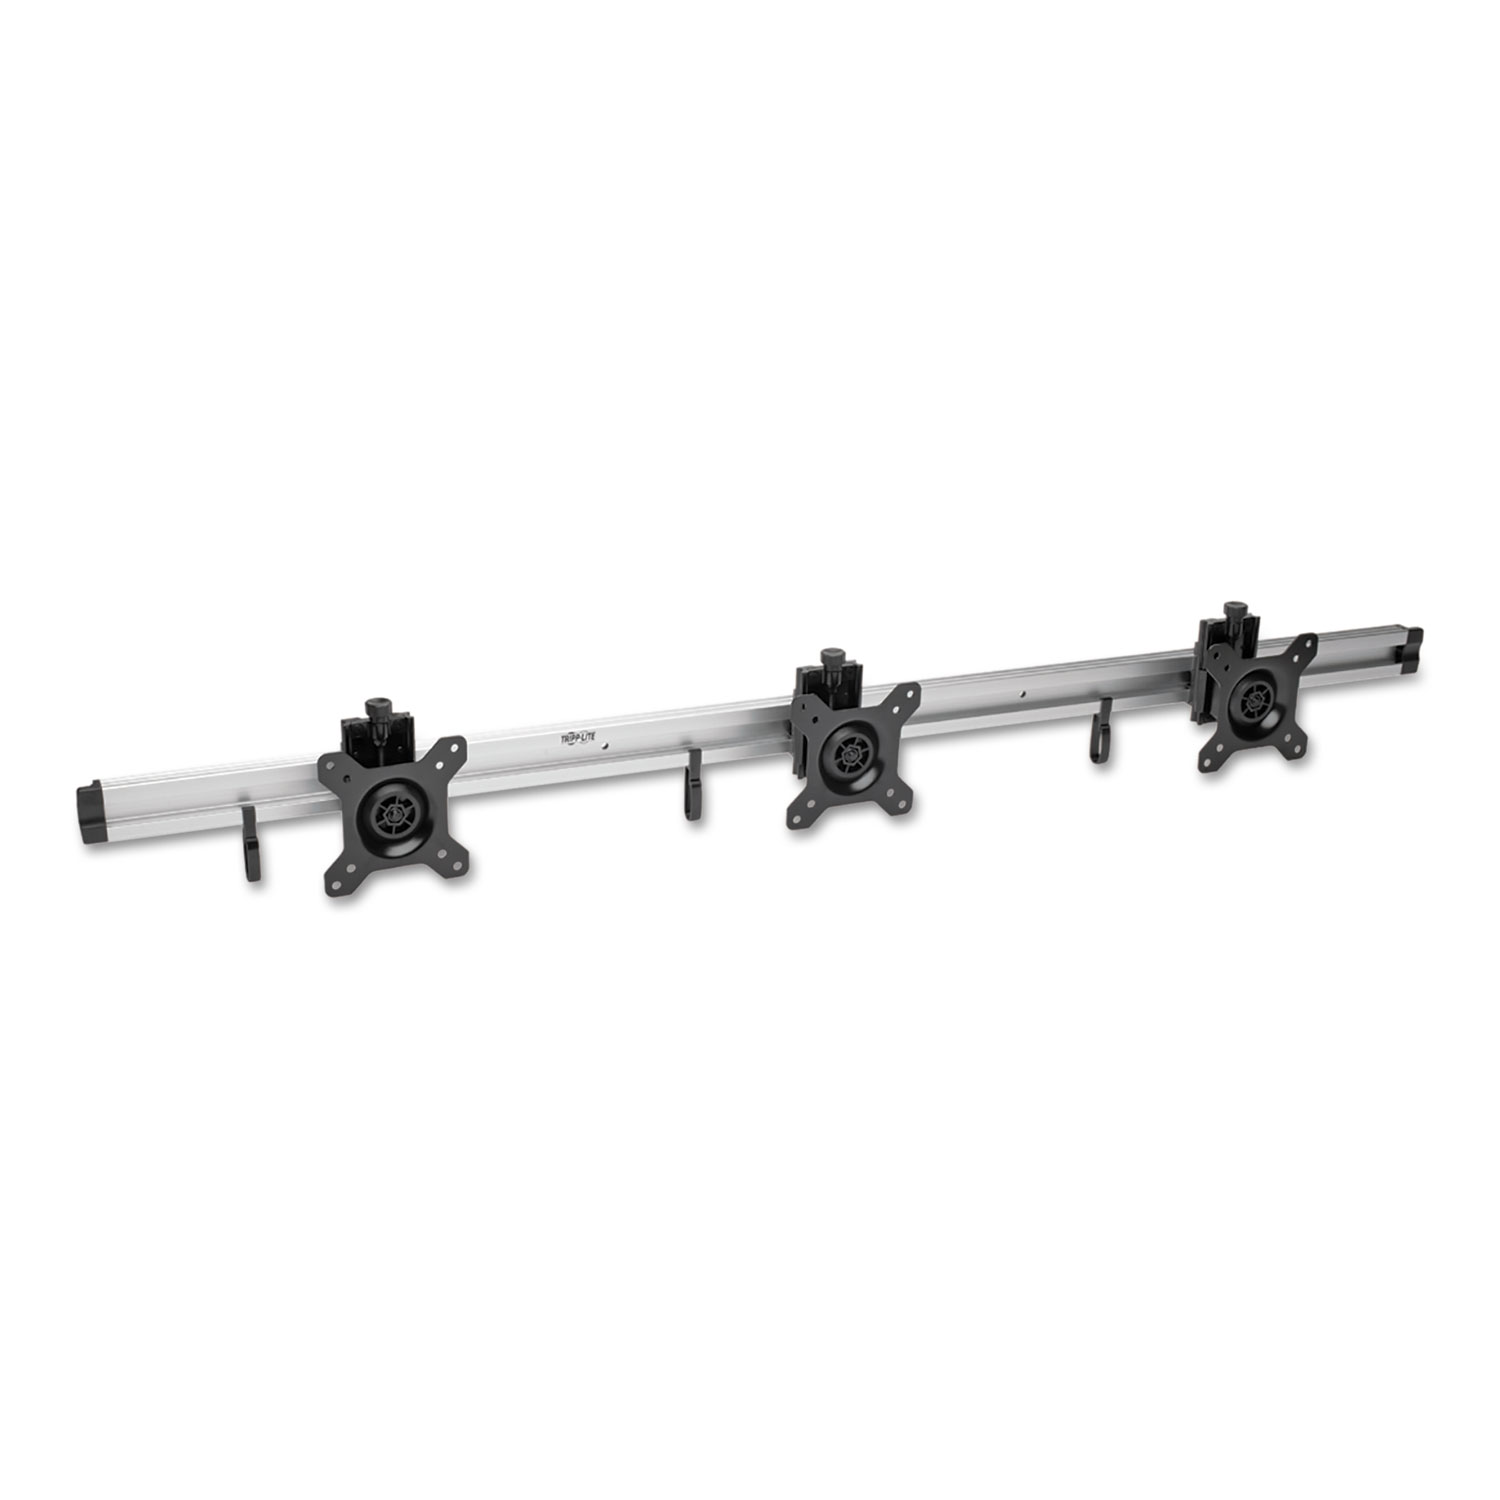 """Triple Flat-Panel Rail Wall Mount for 10"""" to 15"""" TVs/Monitors, up to 18 lbs"""